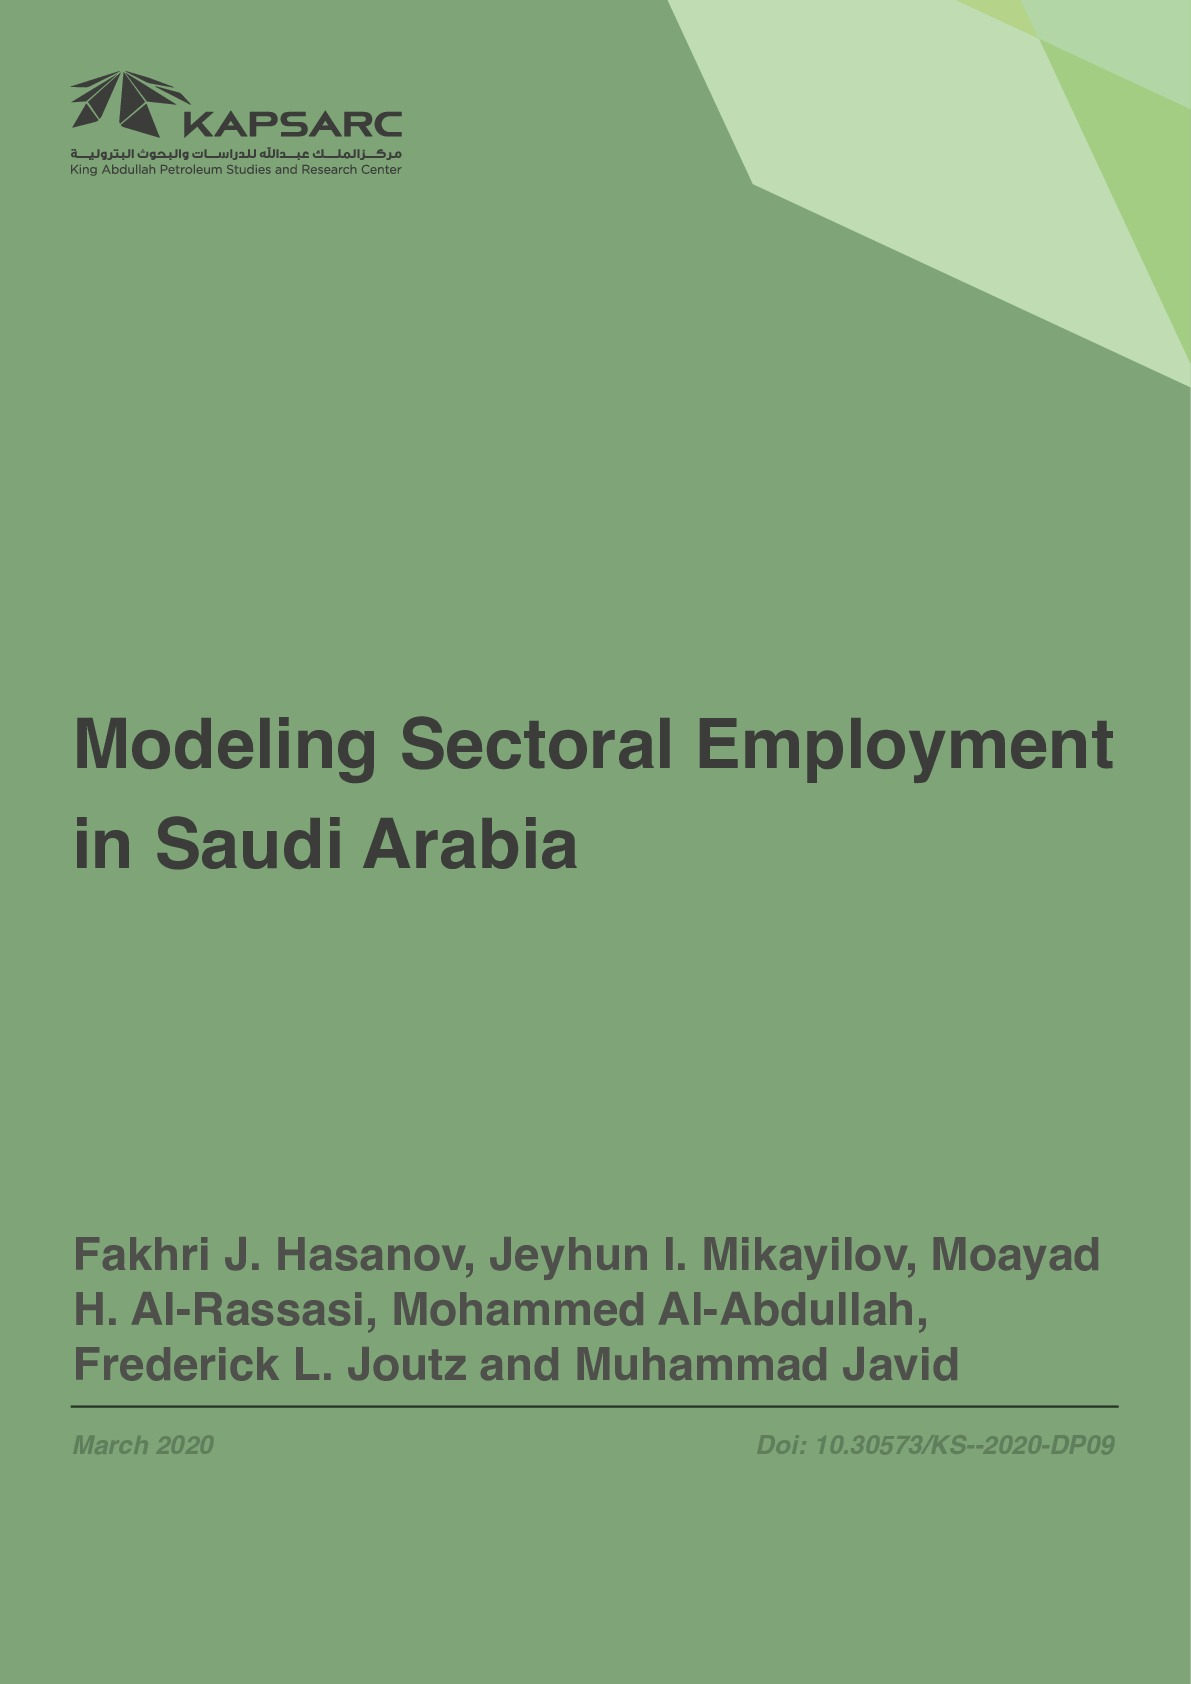 Modeling Sectoral Employment in Saudi Arabia